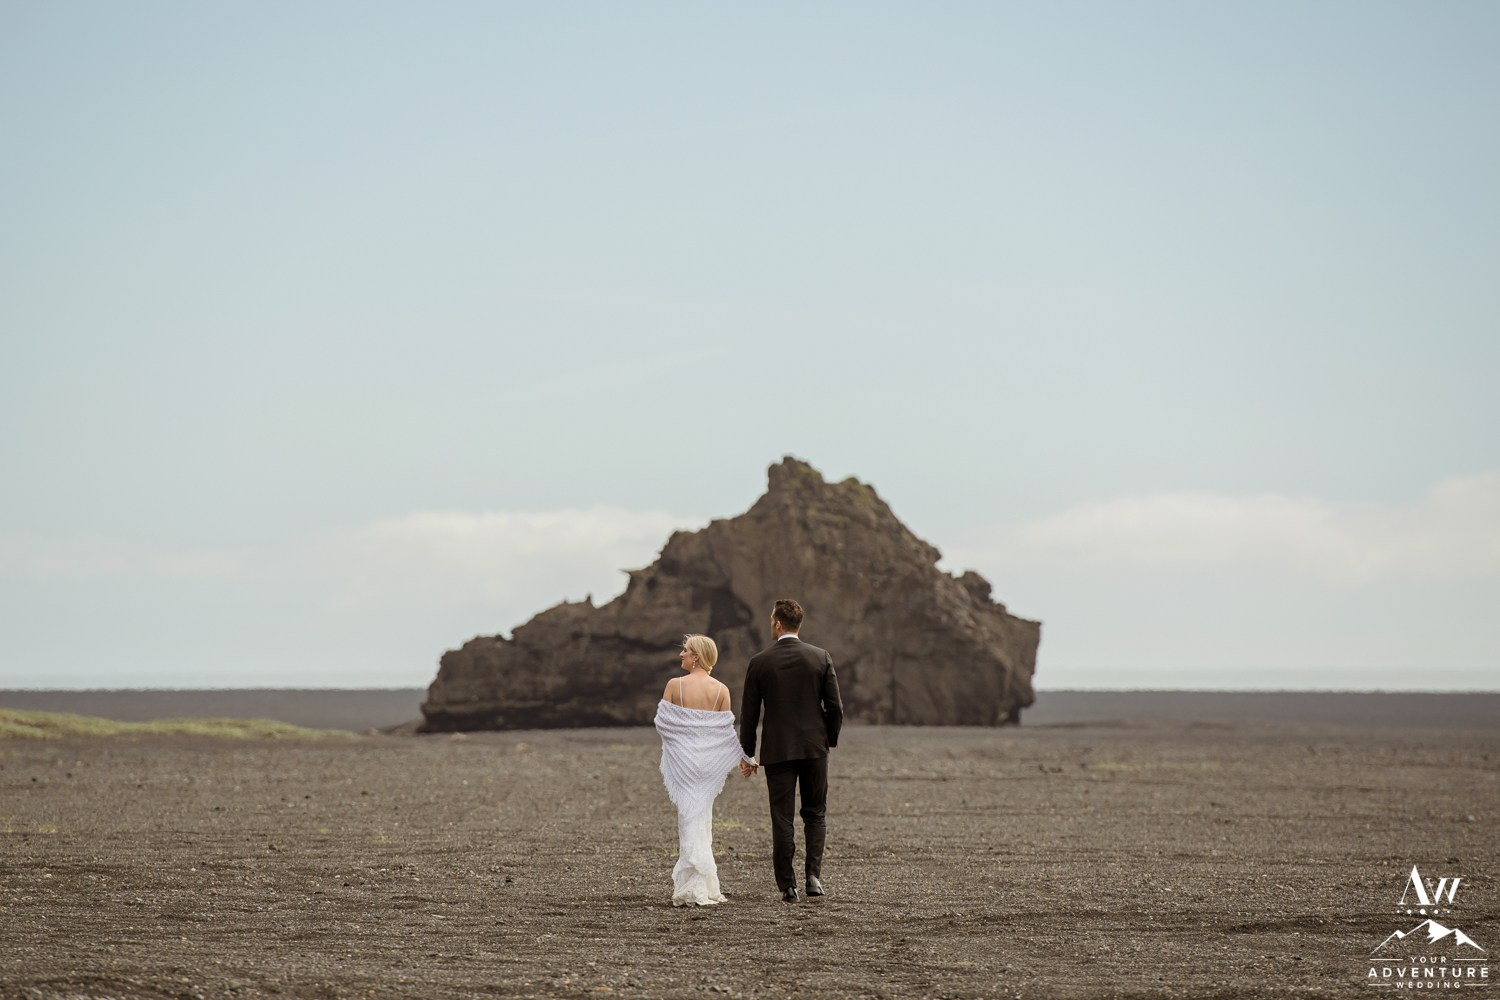 Wedding Locations that look like Mars